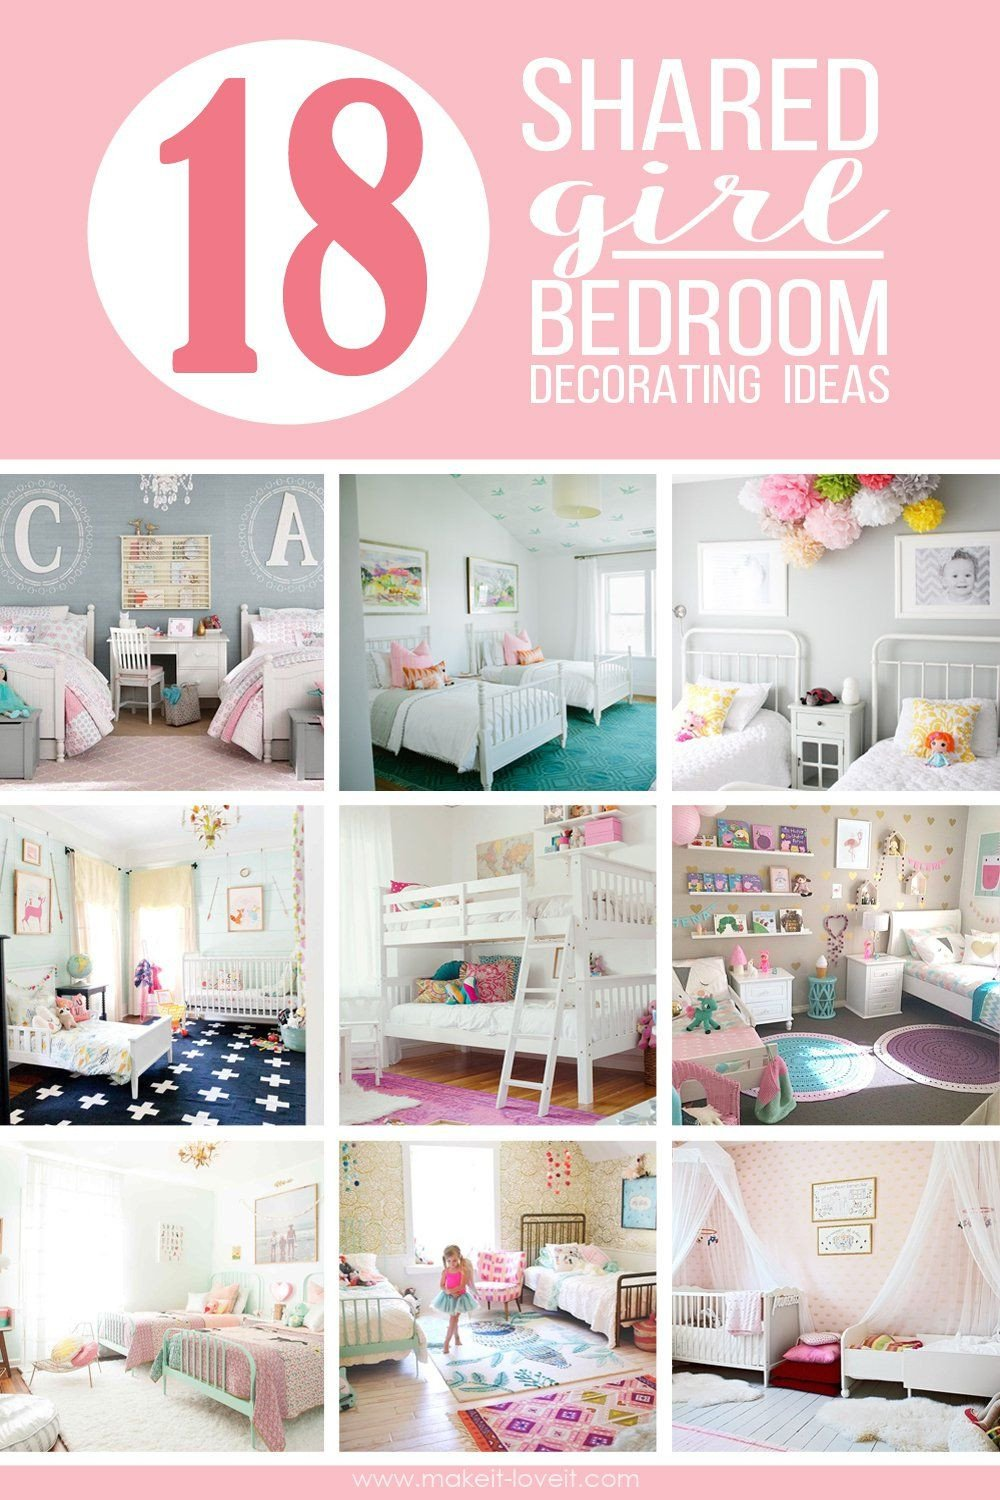 Little Girl Bedroom Decorating Ideas Luxury 18 D Girl Bedroom Decorating Ideas Baby 3